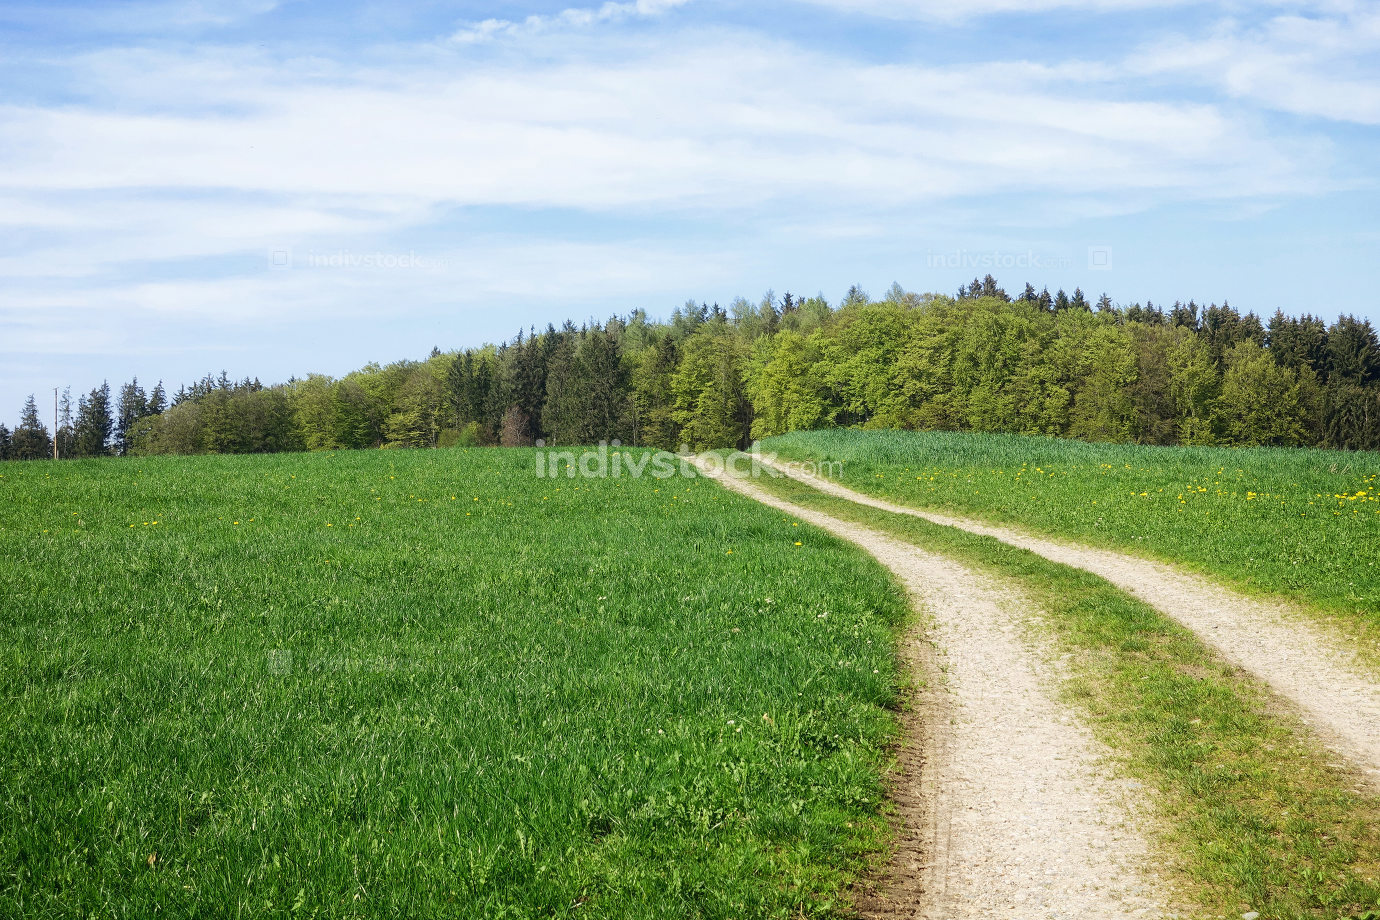 path in a green meadow nature scenery landscape